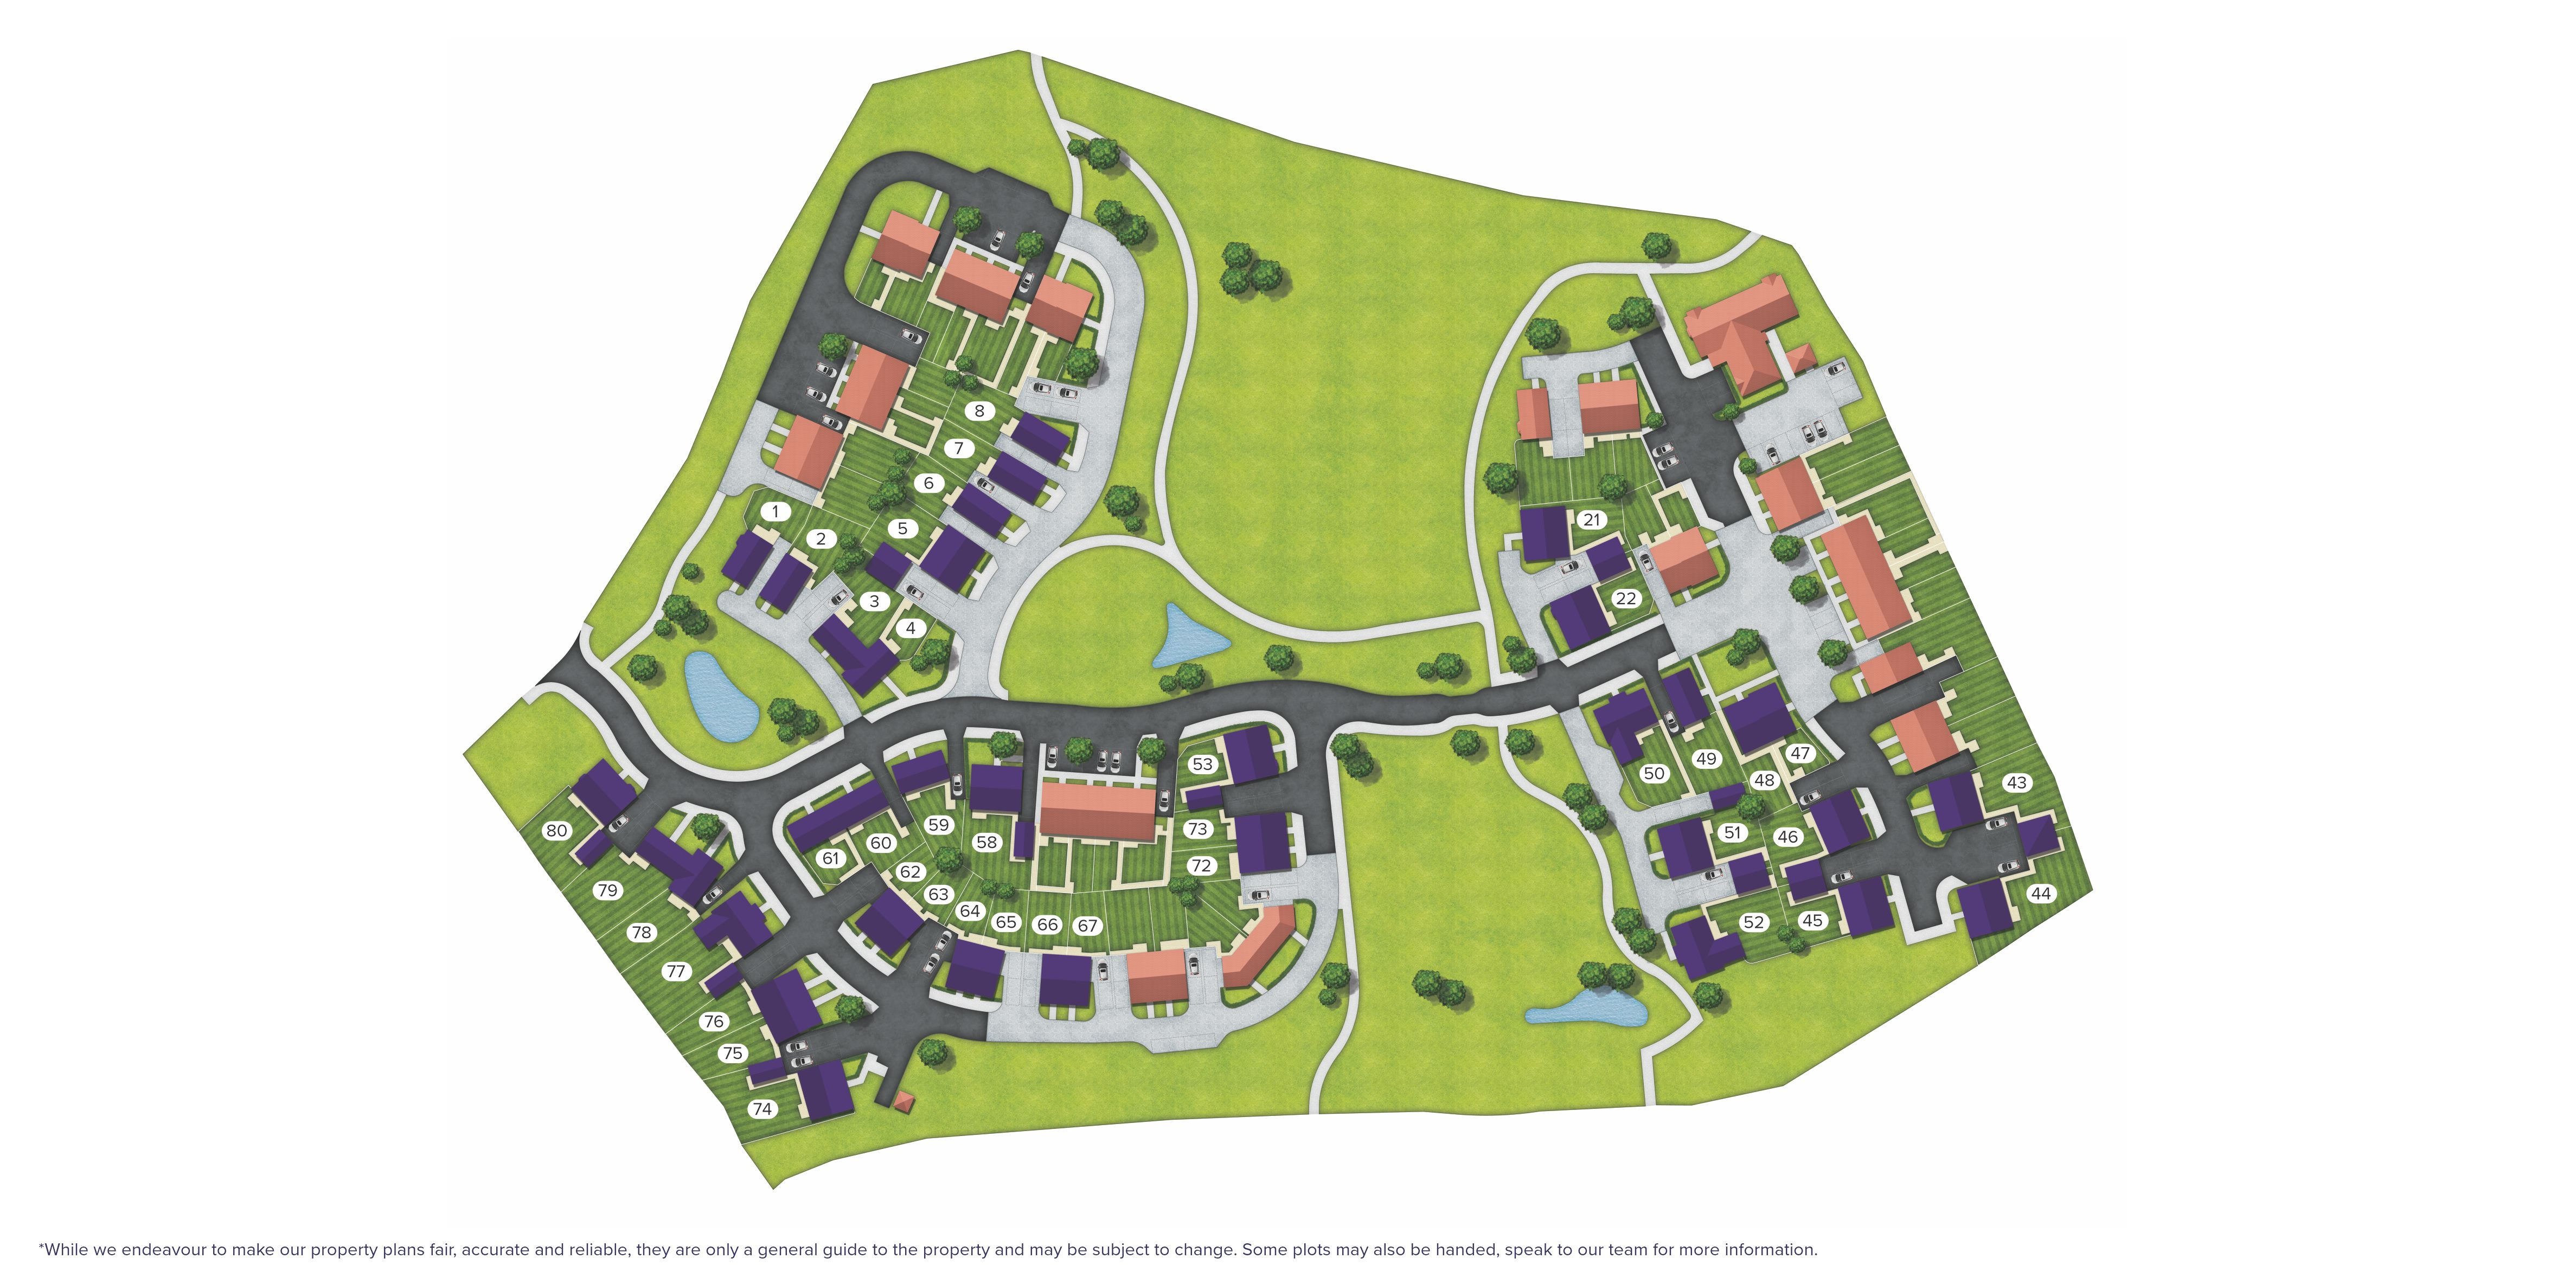 Loperwood Green, Totton site map